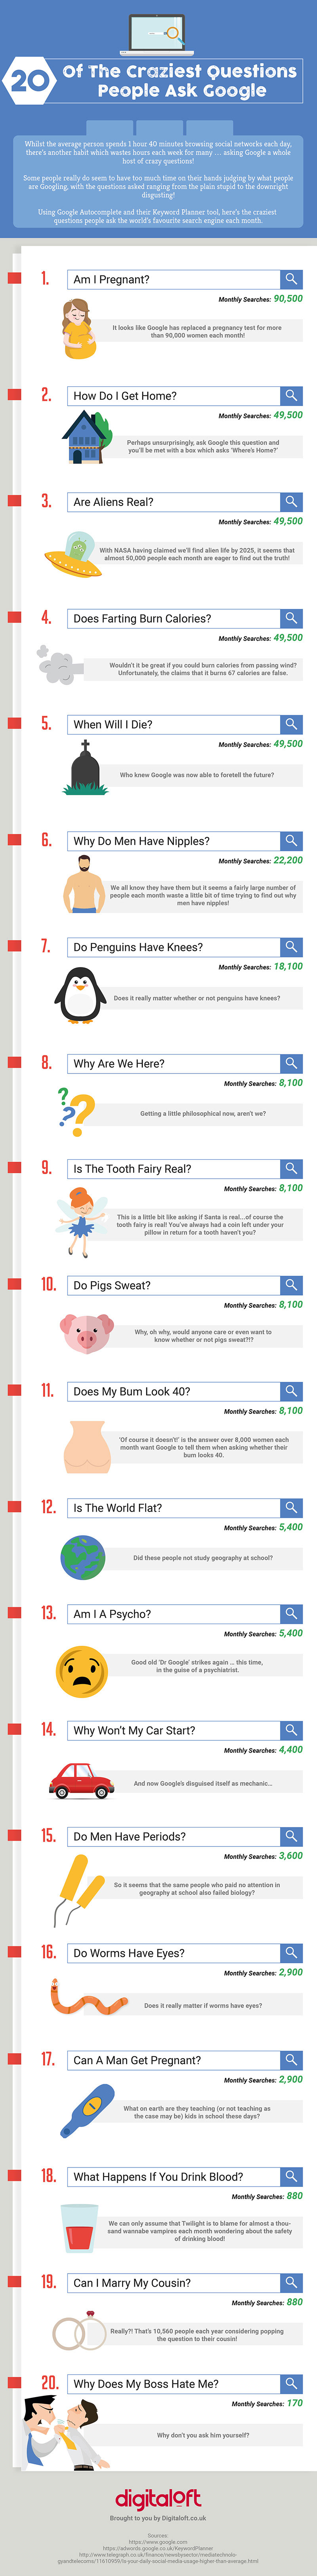 the-craziest-questions-people-ask-google-copy